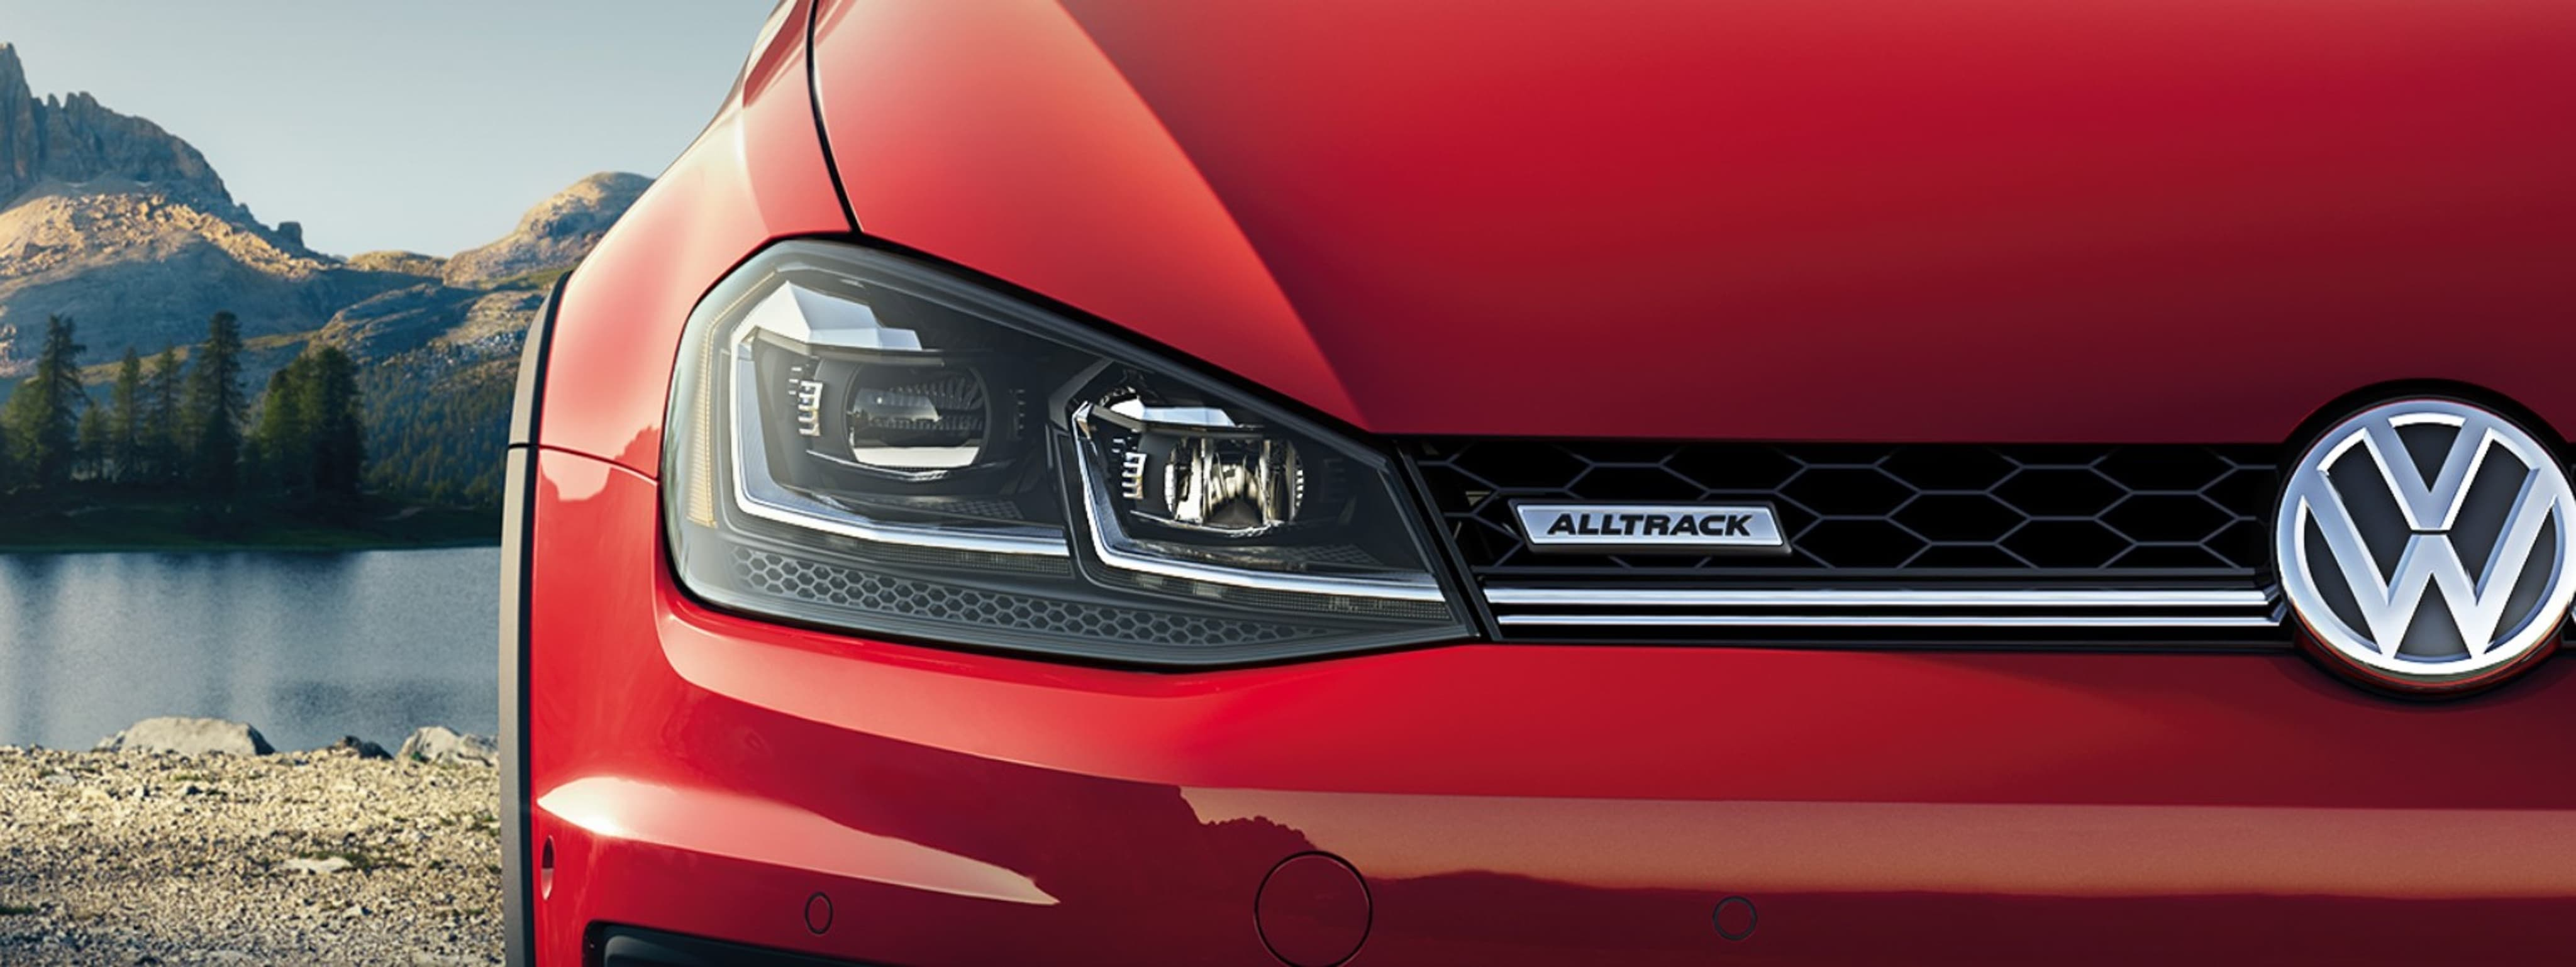 A closeup front view of a tomato red 2019 VW Golf Alltrack